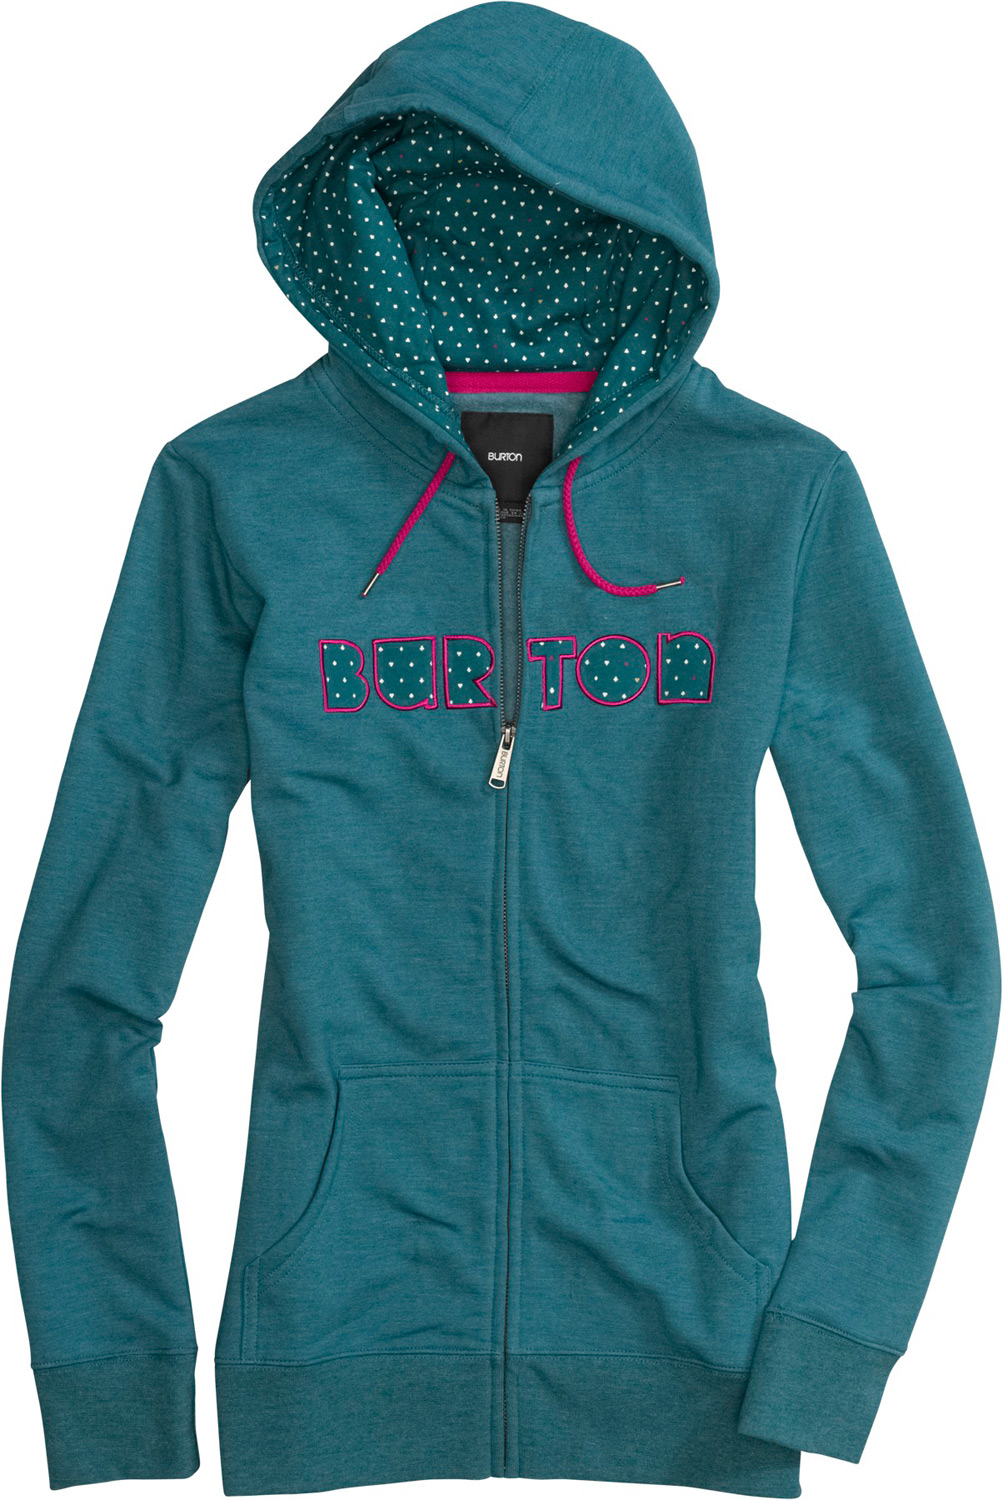 Snowboard Key Features of the Burton Gravity Fullzip Hoodie: 85% Cotton, 12% Polyester, 3% Spandex Custom Printed Artwork on Hood Lining and Front Applique Regular Fit - $65.00